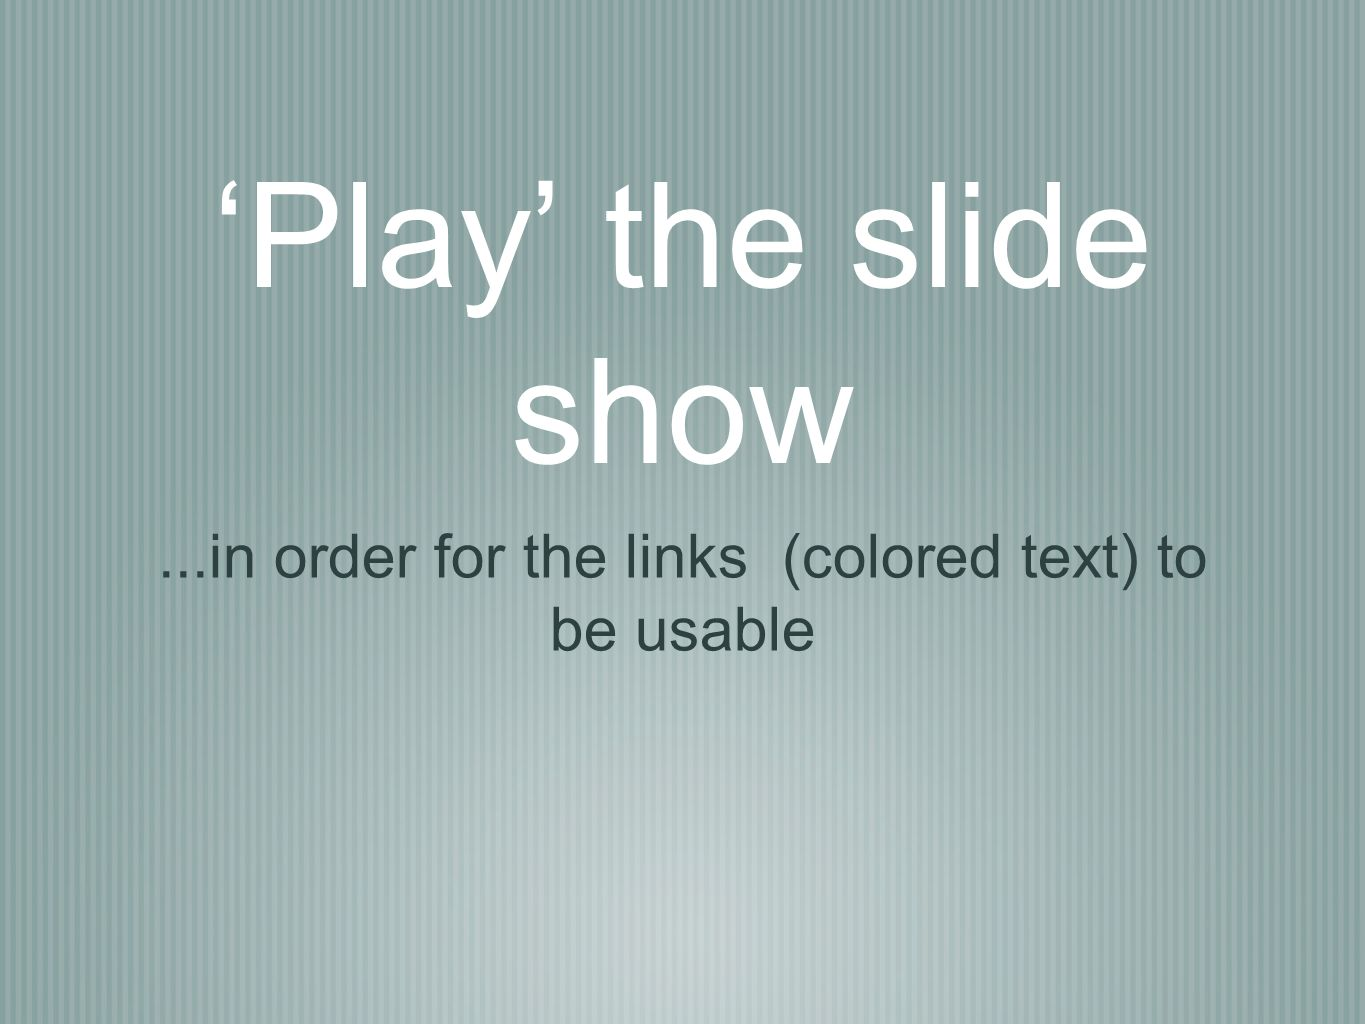 Play the slide show...in order for the links (colored text) to be usable